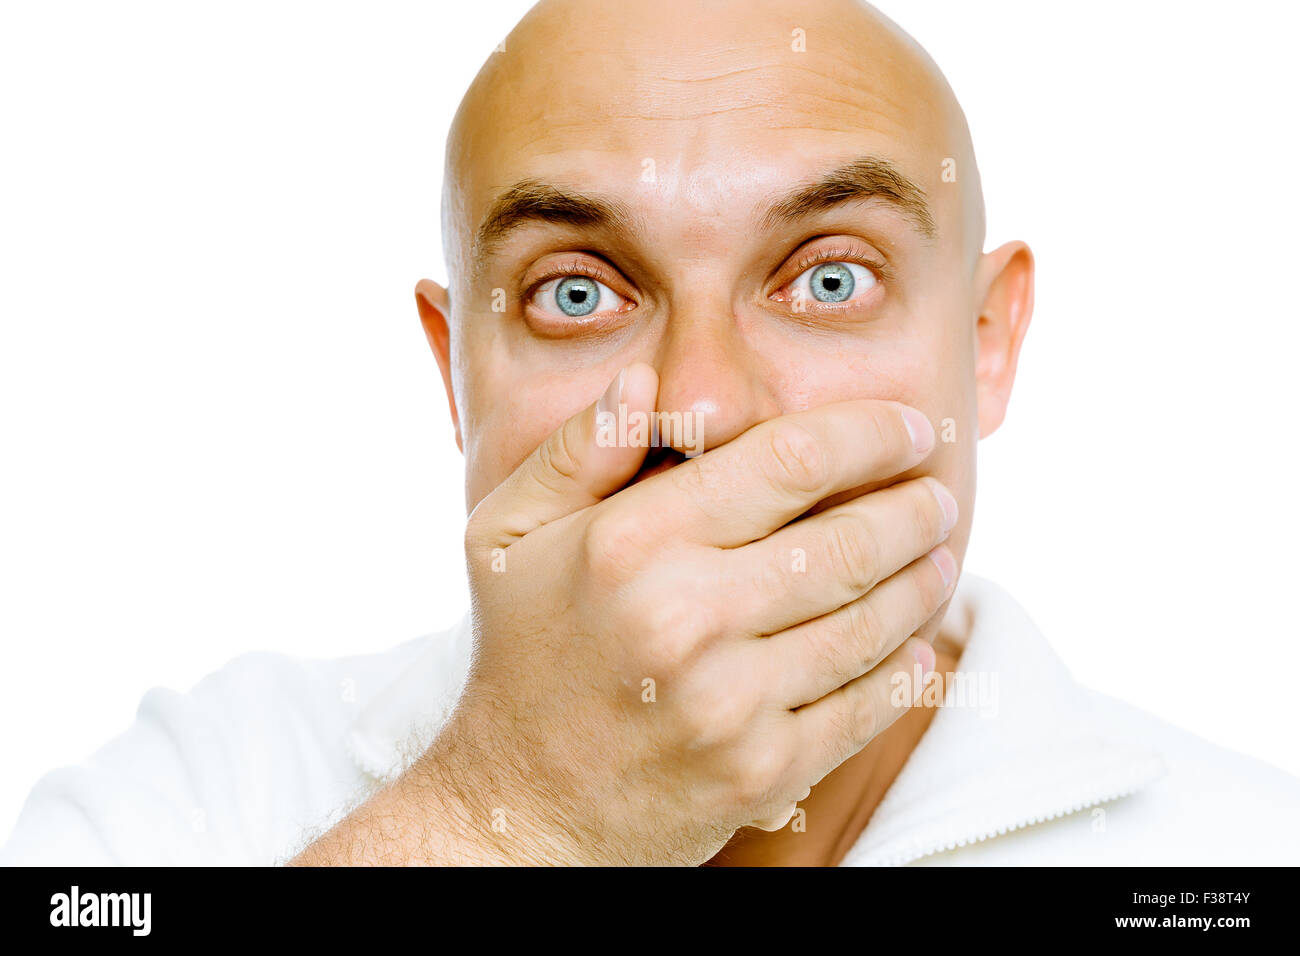 Bald blue eyes frightened man in a white jacket covers her mouth with his hand. Studio. isolated - Stock Image